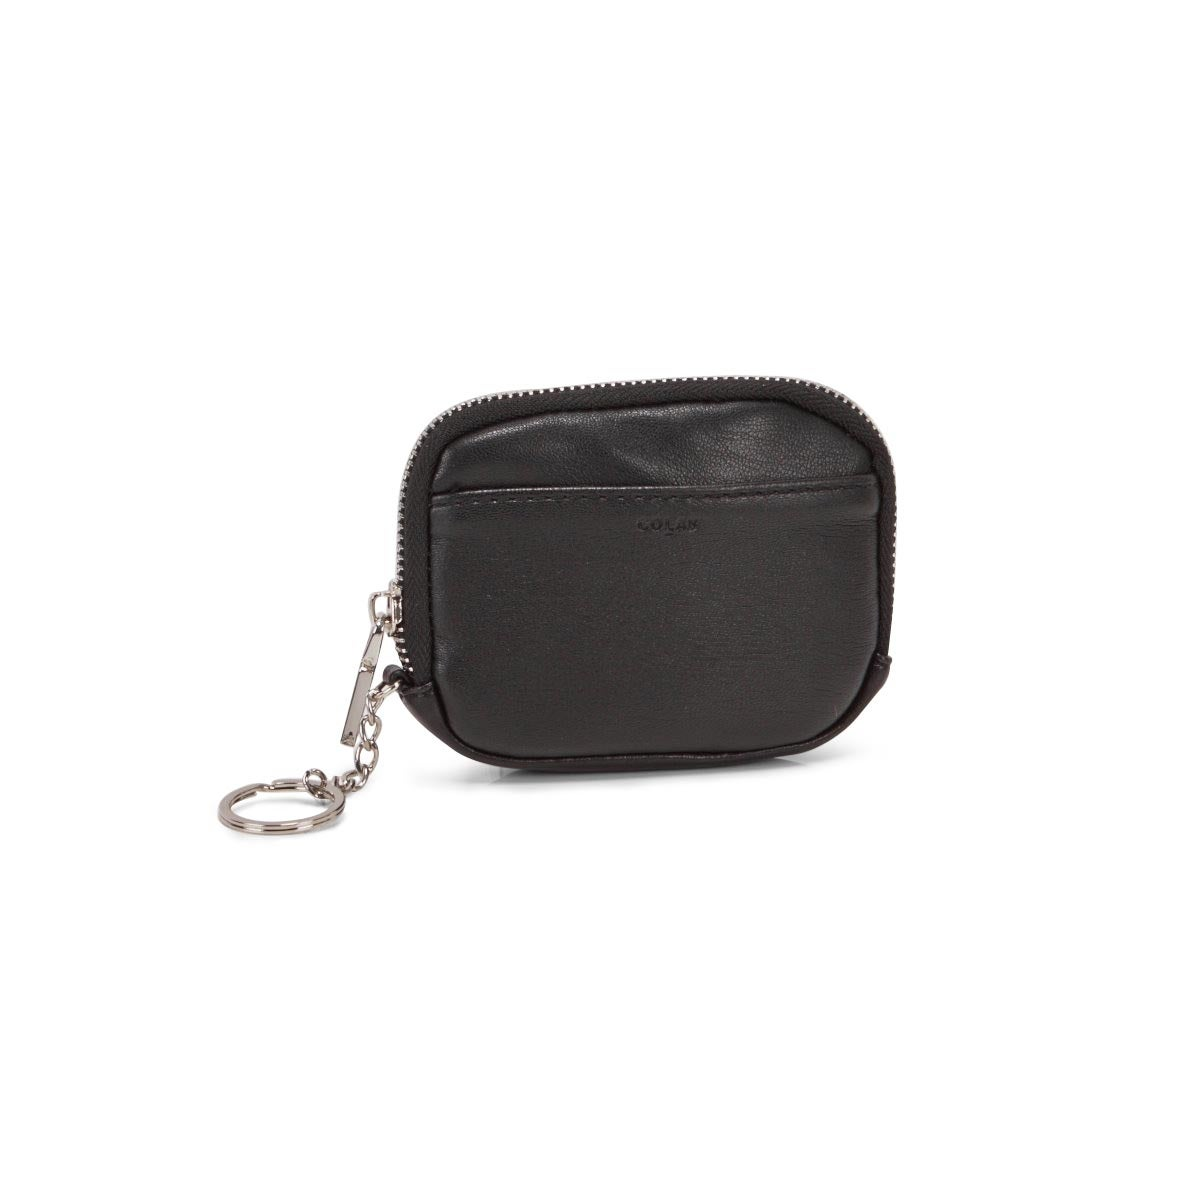 Lds black zip up wallet